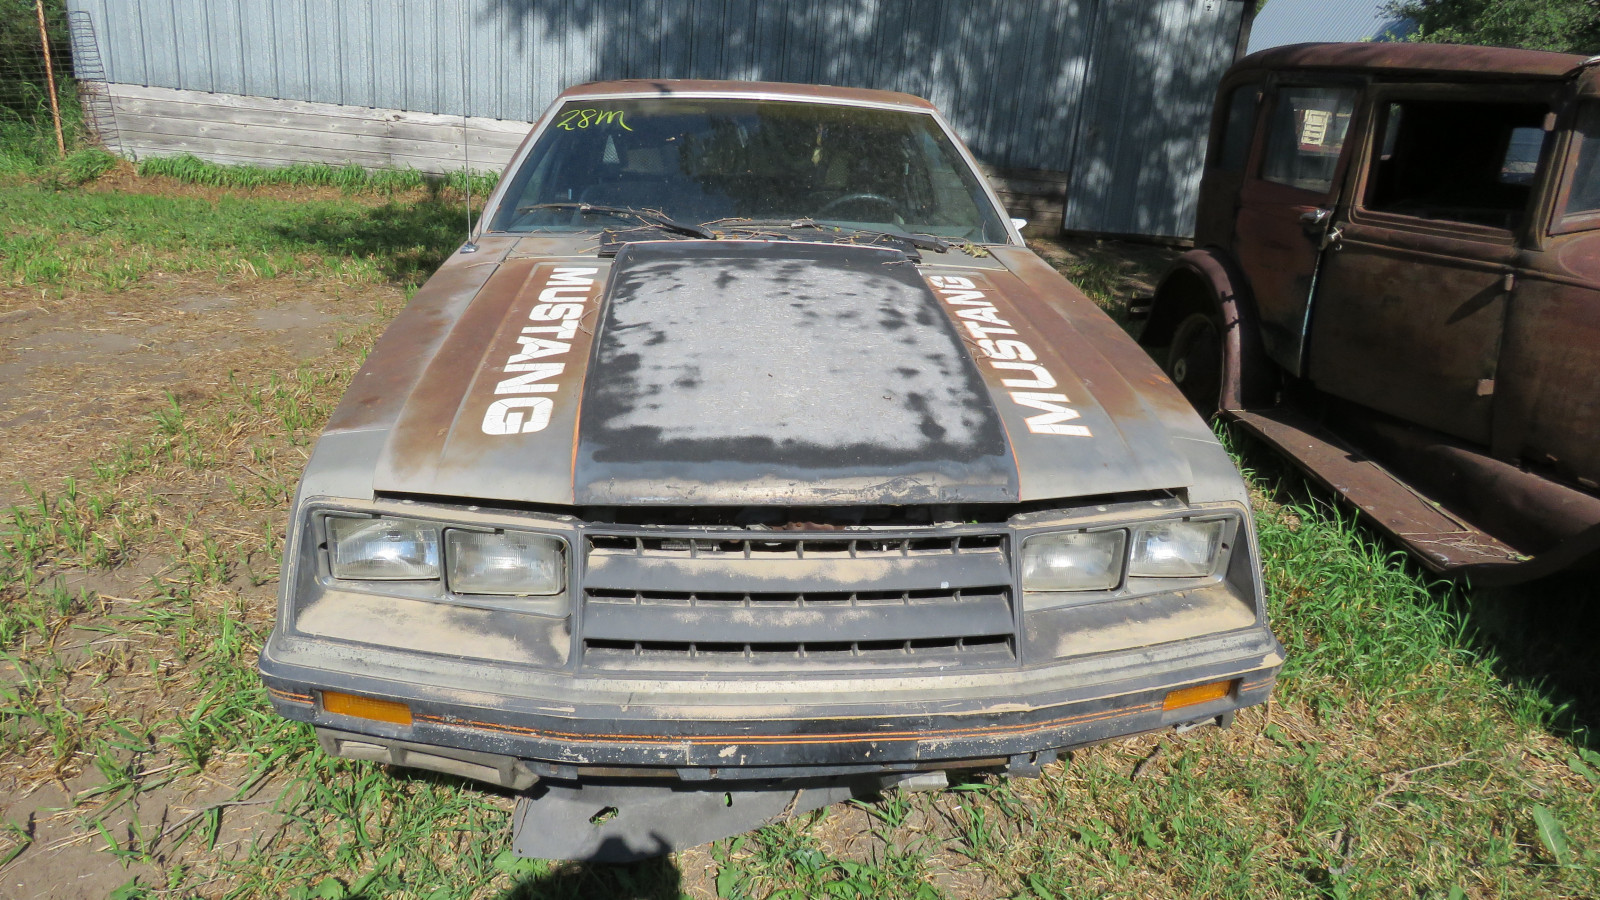 1979 Ford Mustang Coupe for Project or Parts - Image 2